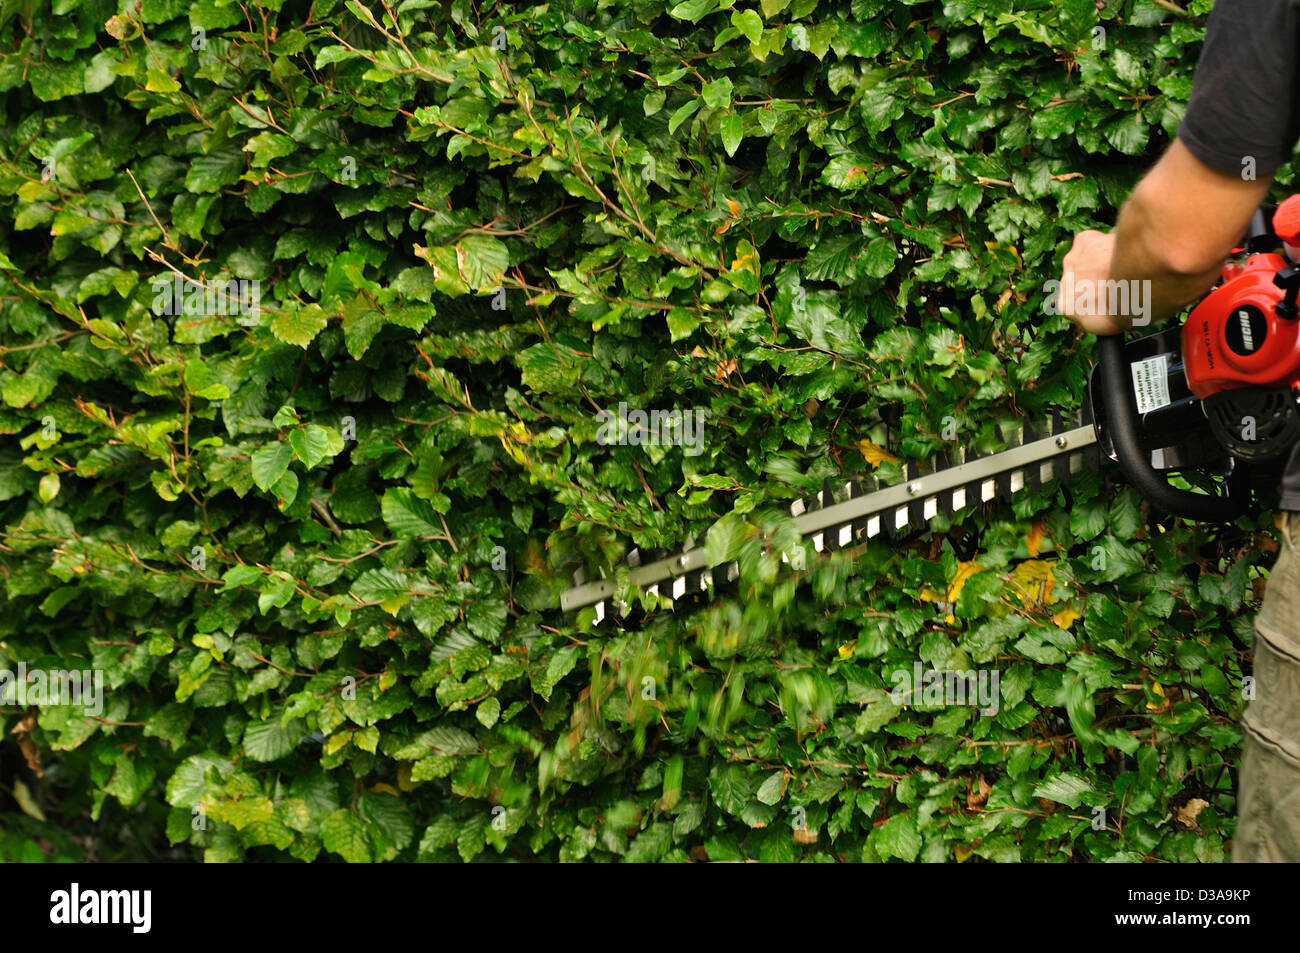 Uncategorized Hedge Trim hedge trimmer stock photos images alamy trimming a beech with uk image